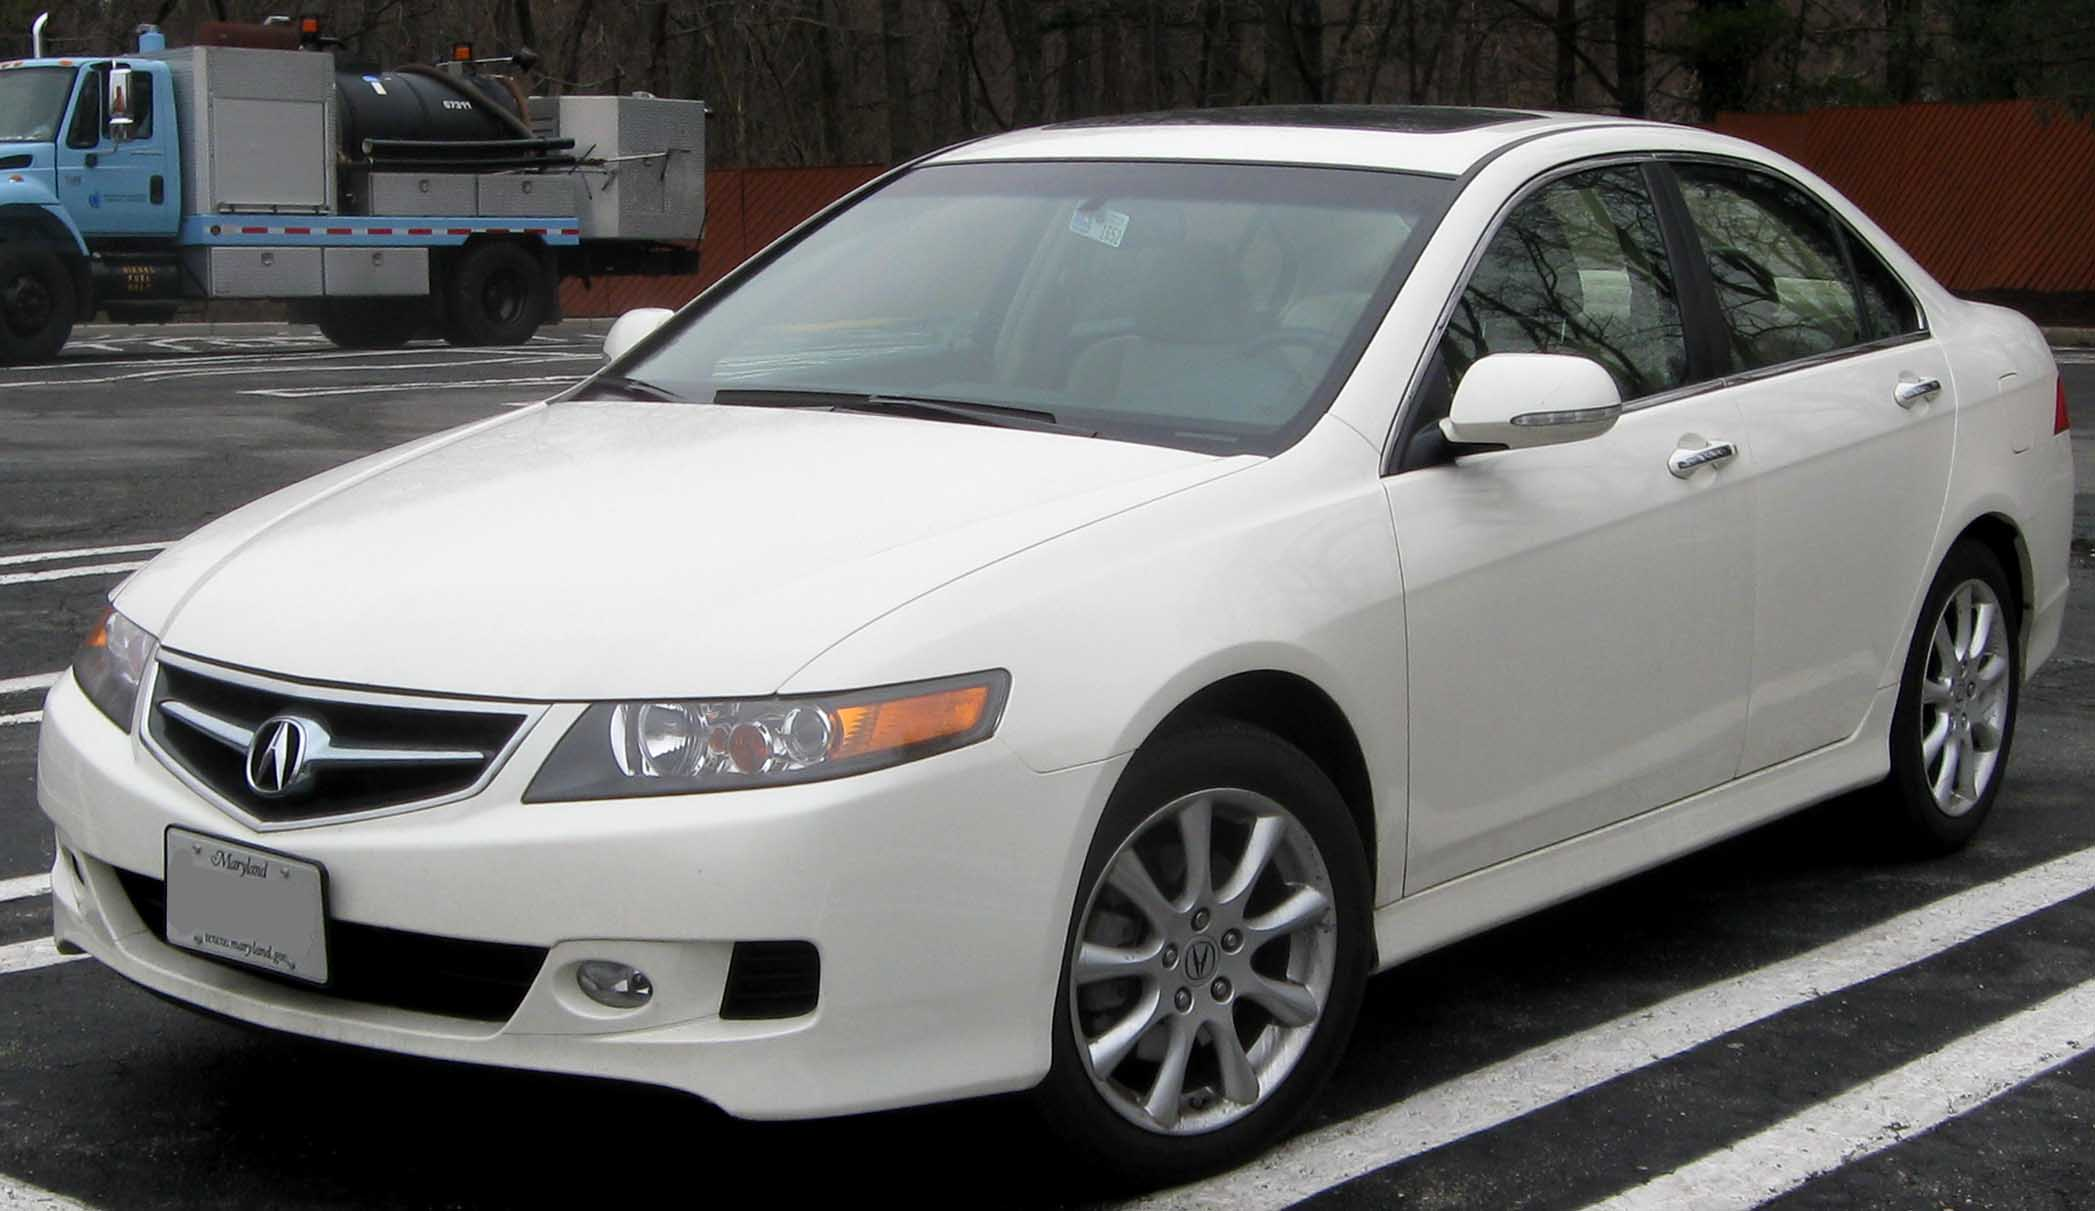 File:06-08 Acura TSX.jpg - Wikimedia Commons